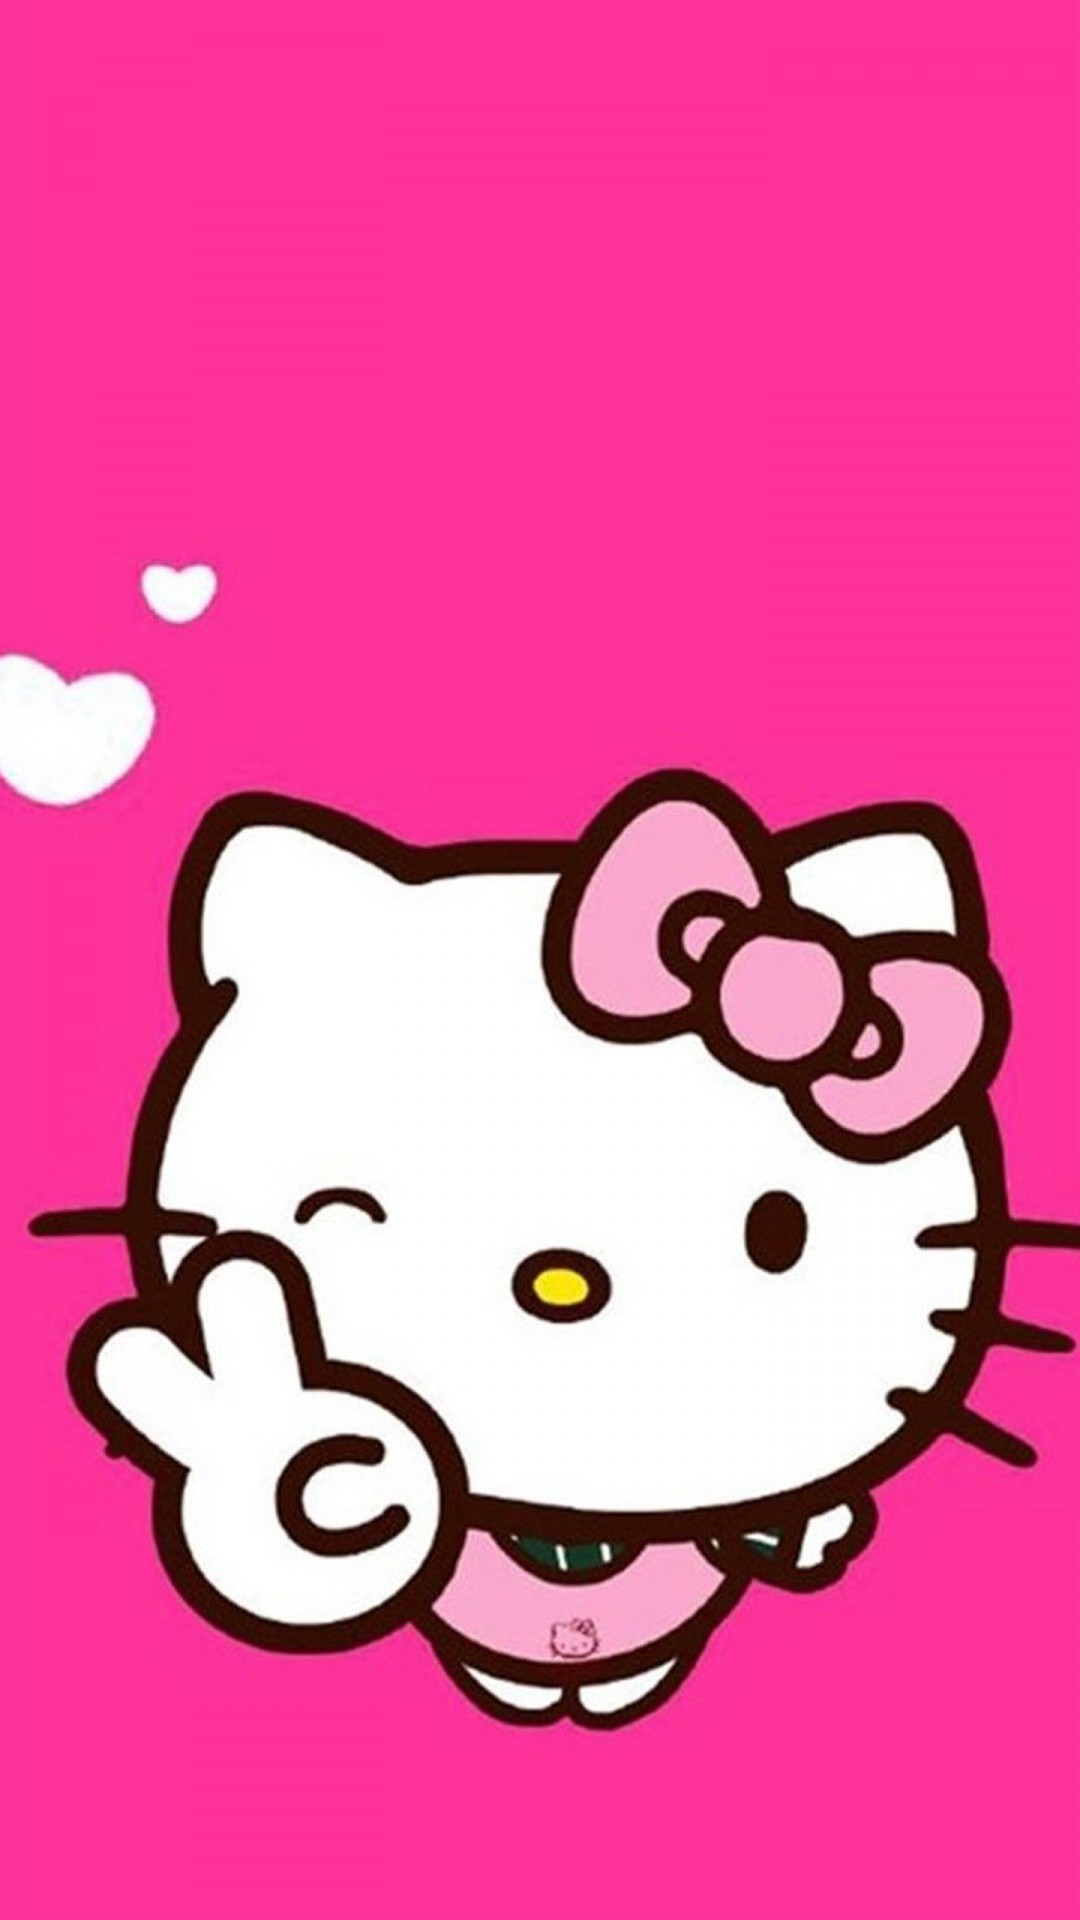 Cool Wallpaper Hello Kitty Note 2 - cute-hello-kitty-wallpaper-background-1080x1920  Pic_615691.jpg